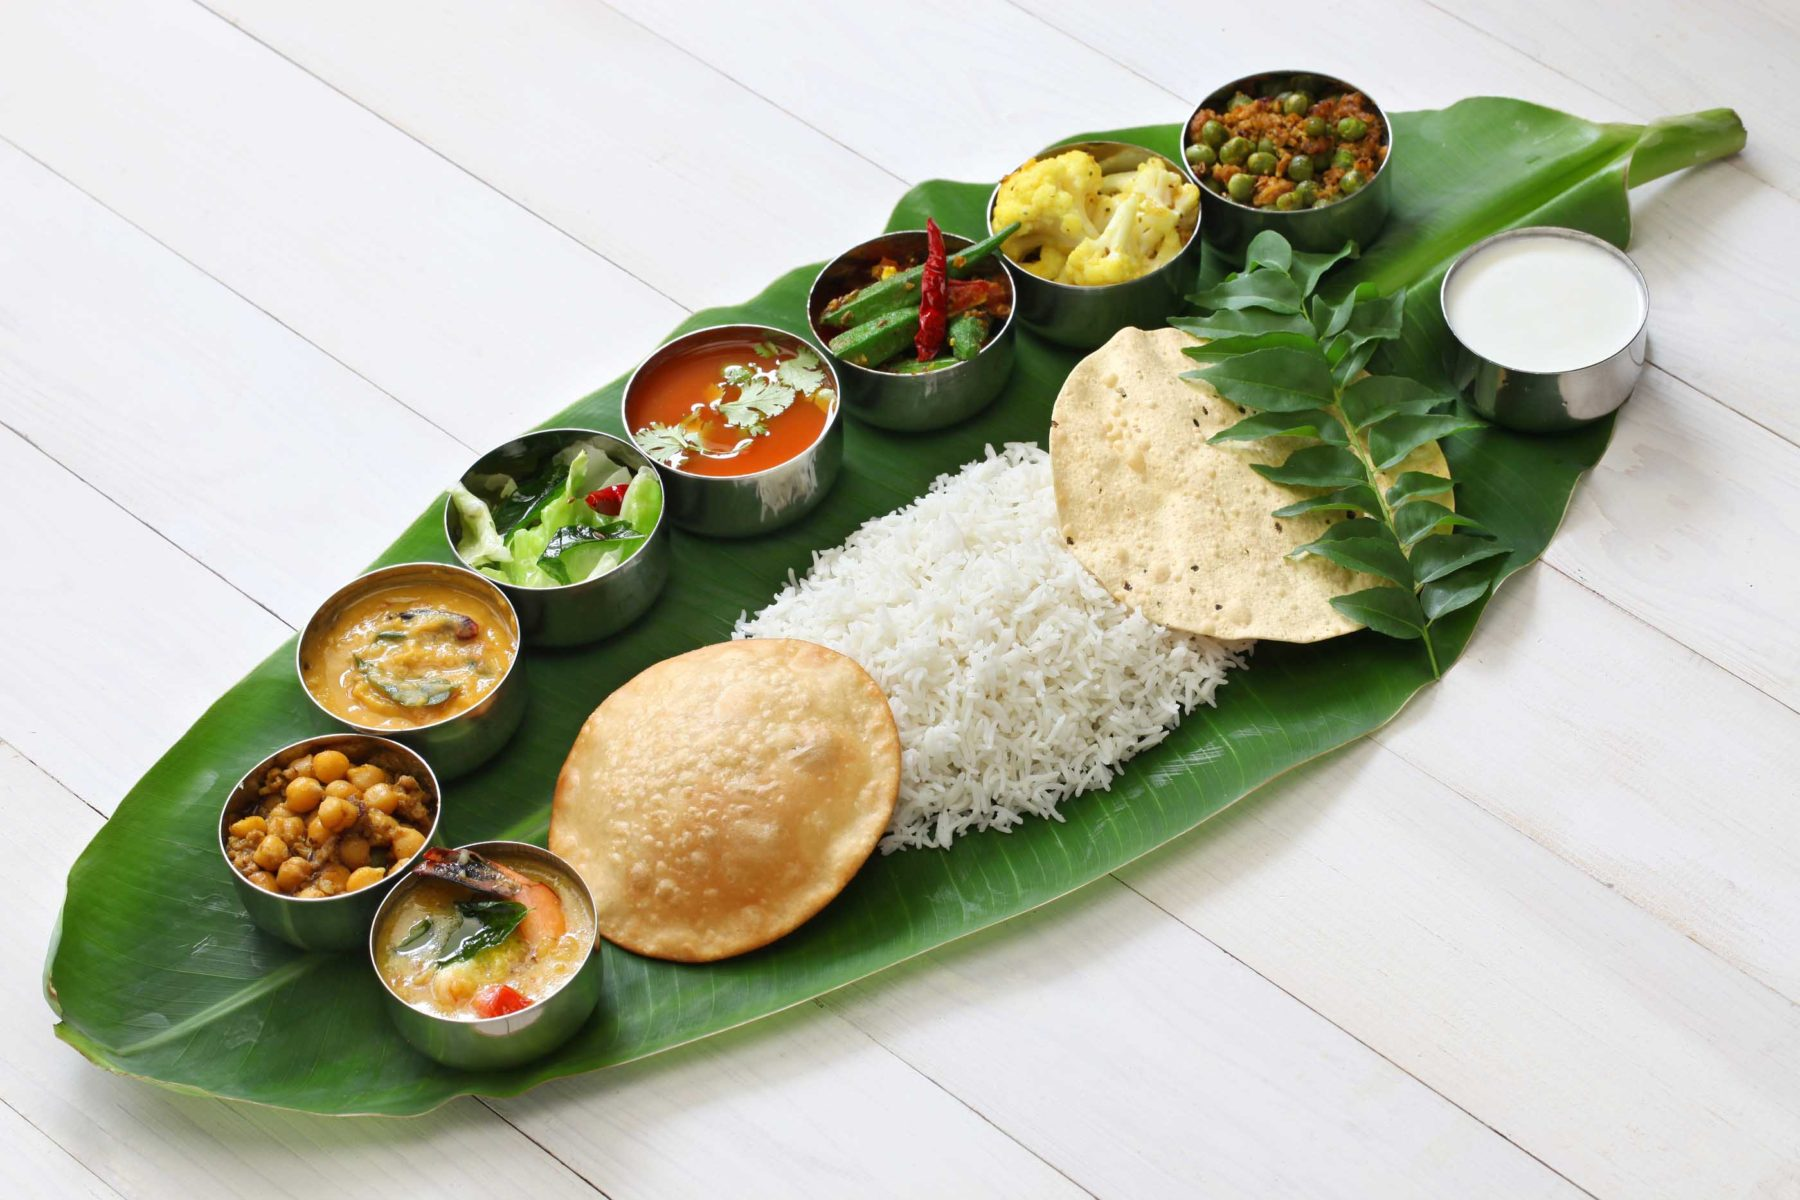 Foreverfit Meals Served On Banana Leaf Traditional South